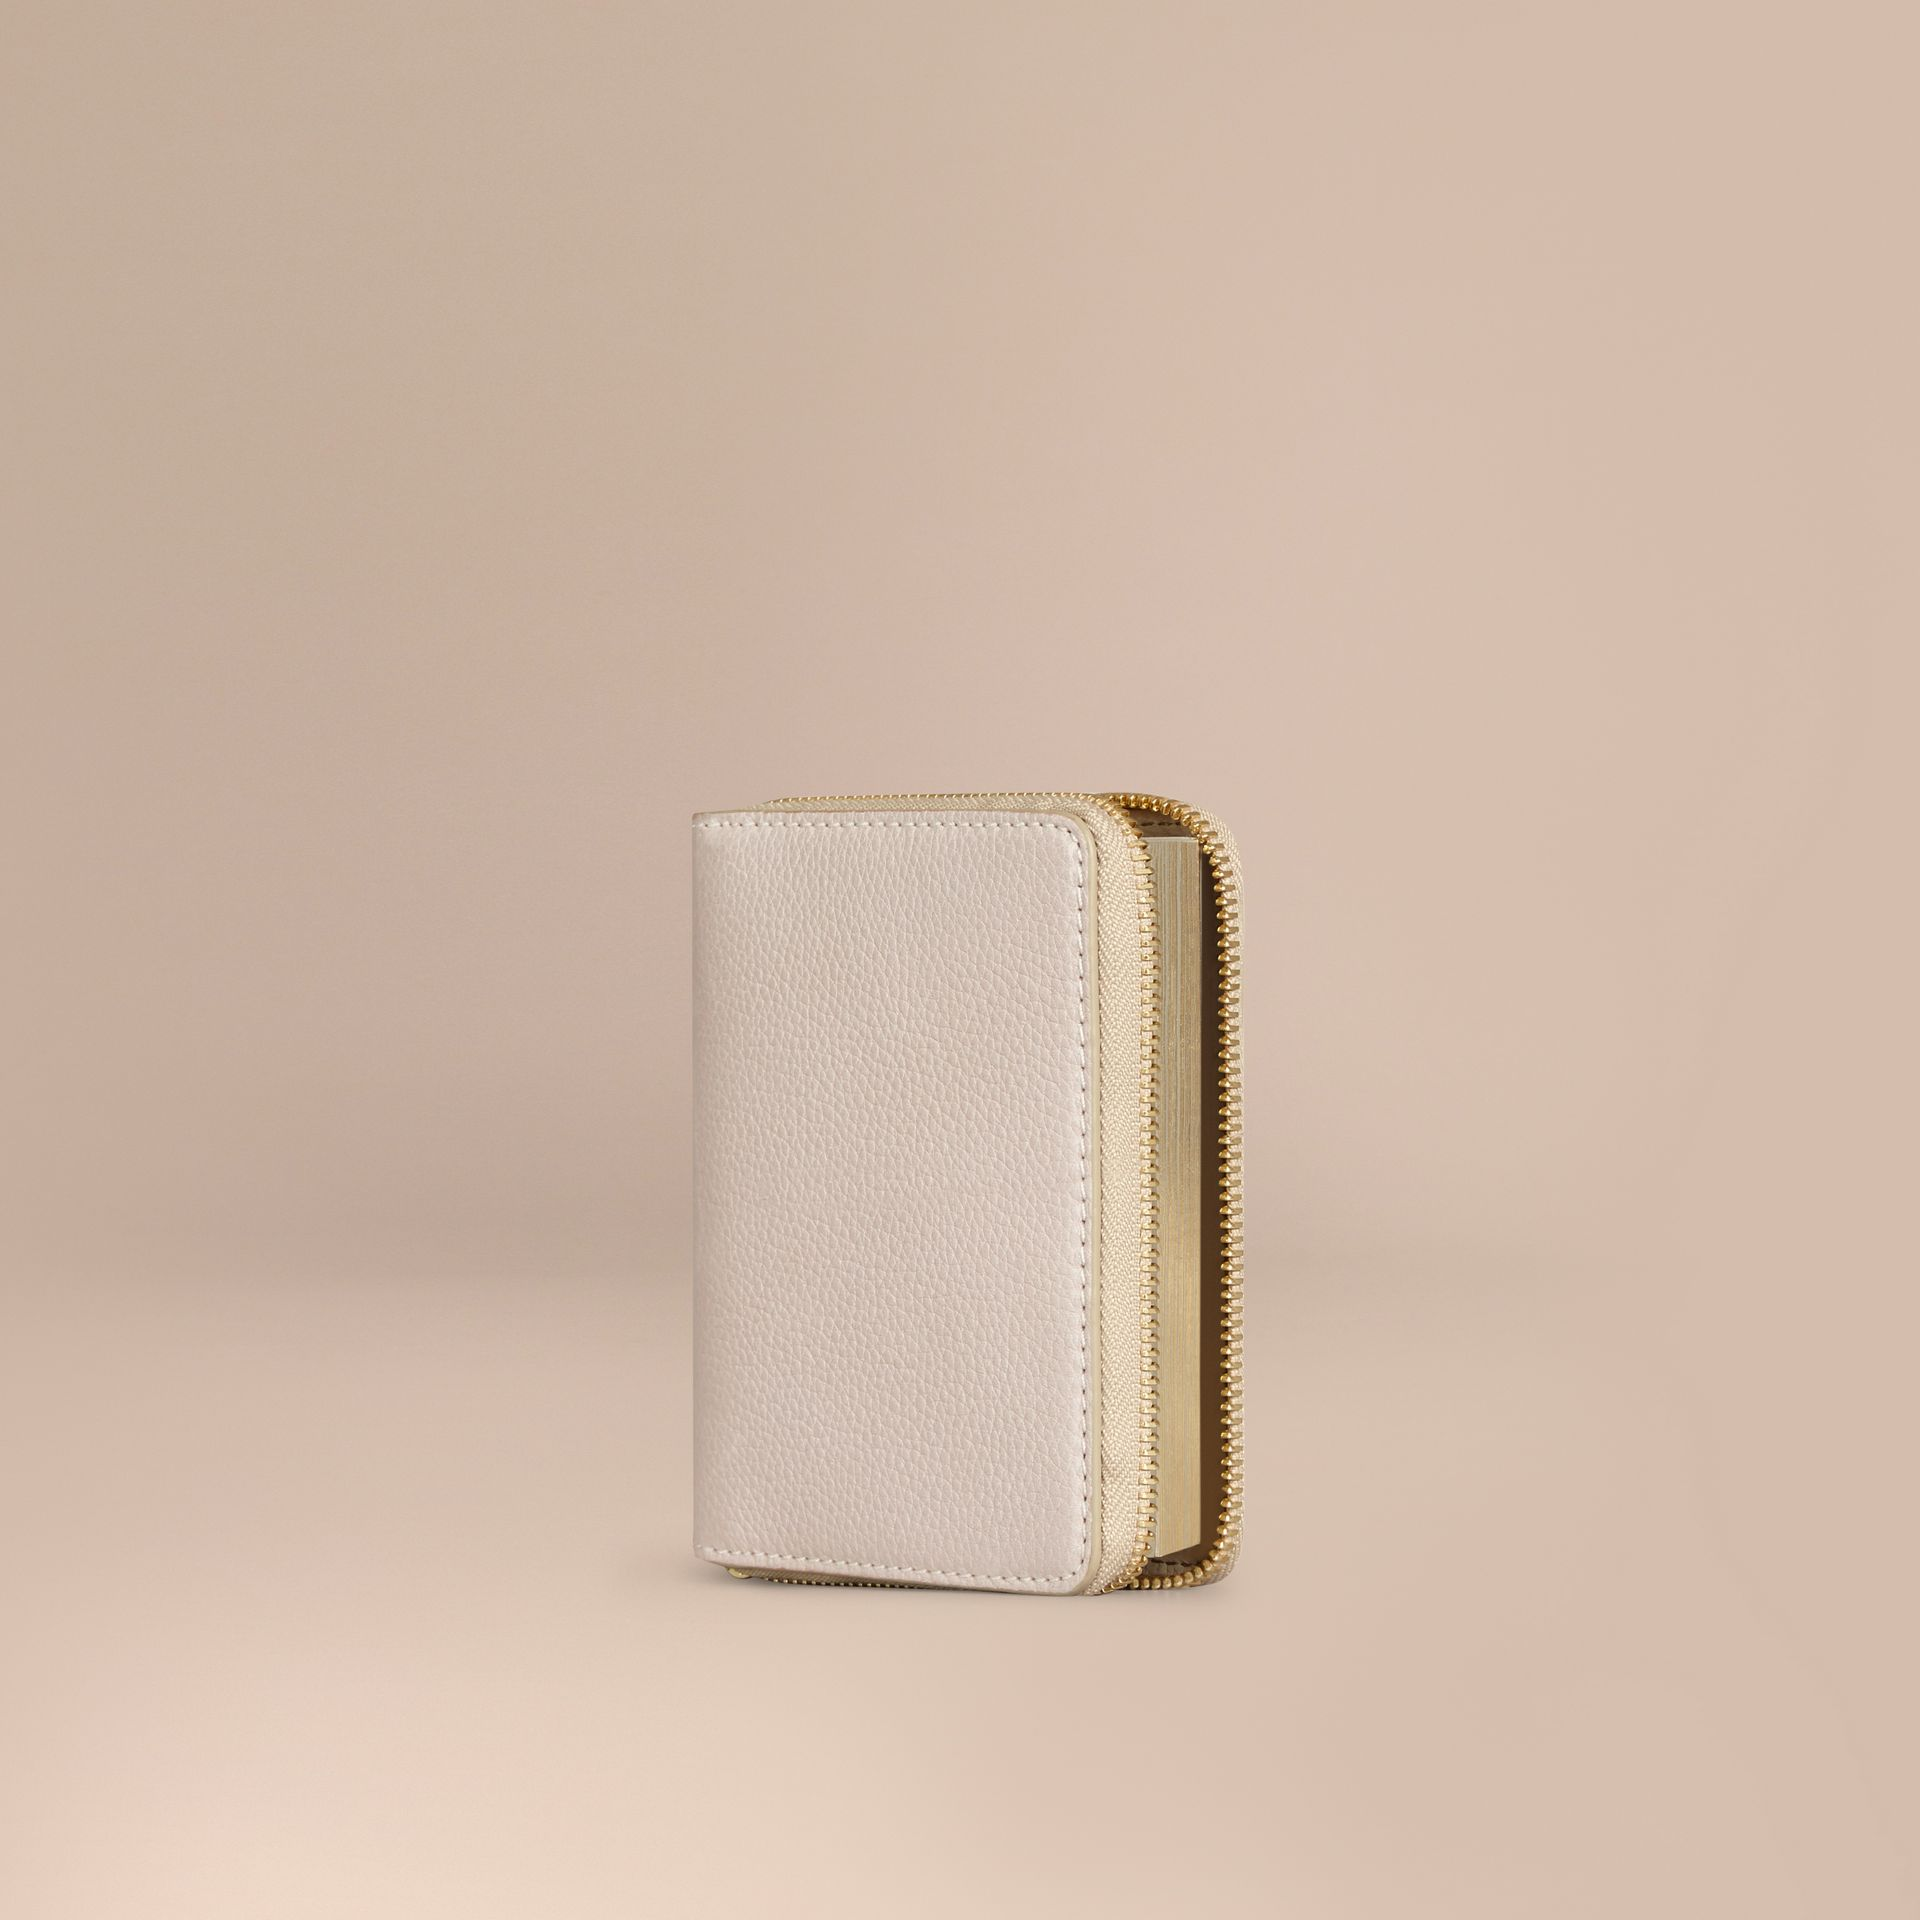 Ziparound Grainy Leather Mini Notebook in Stone | Burberry - gallery image 1